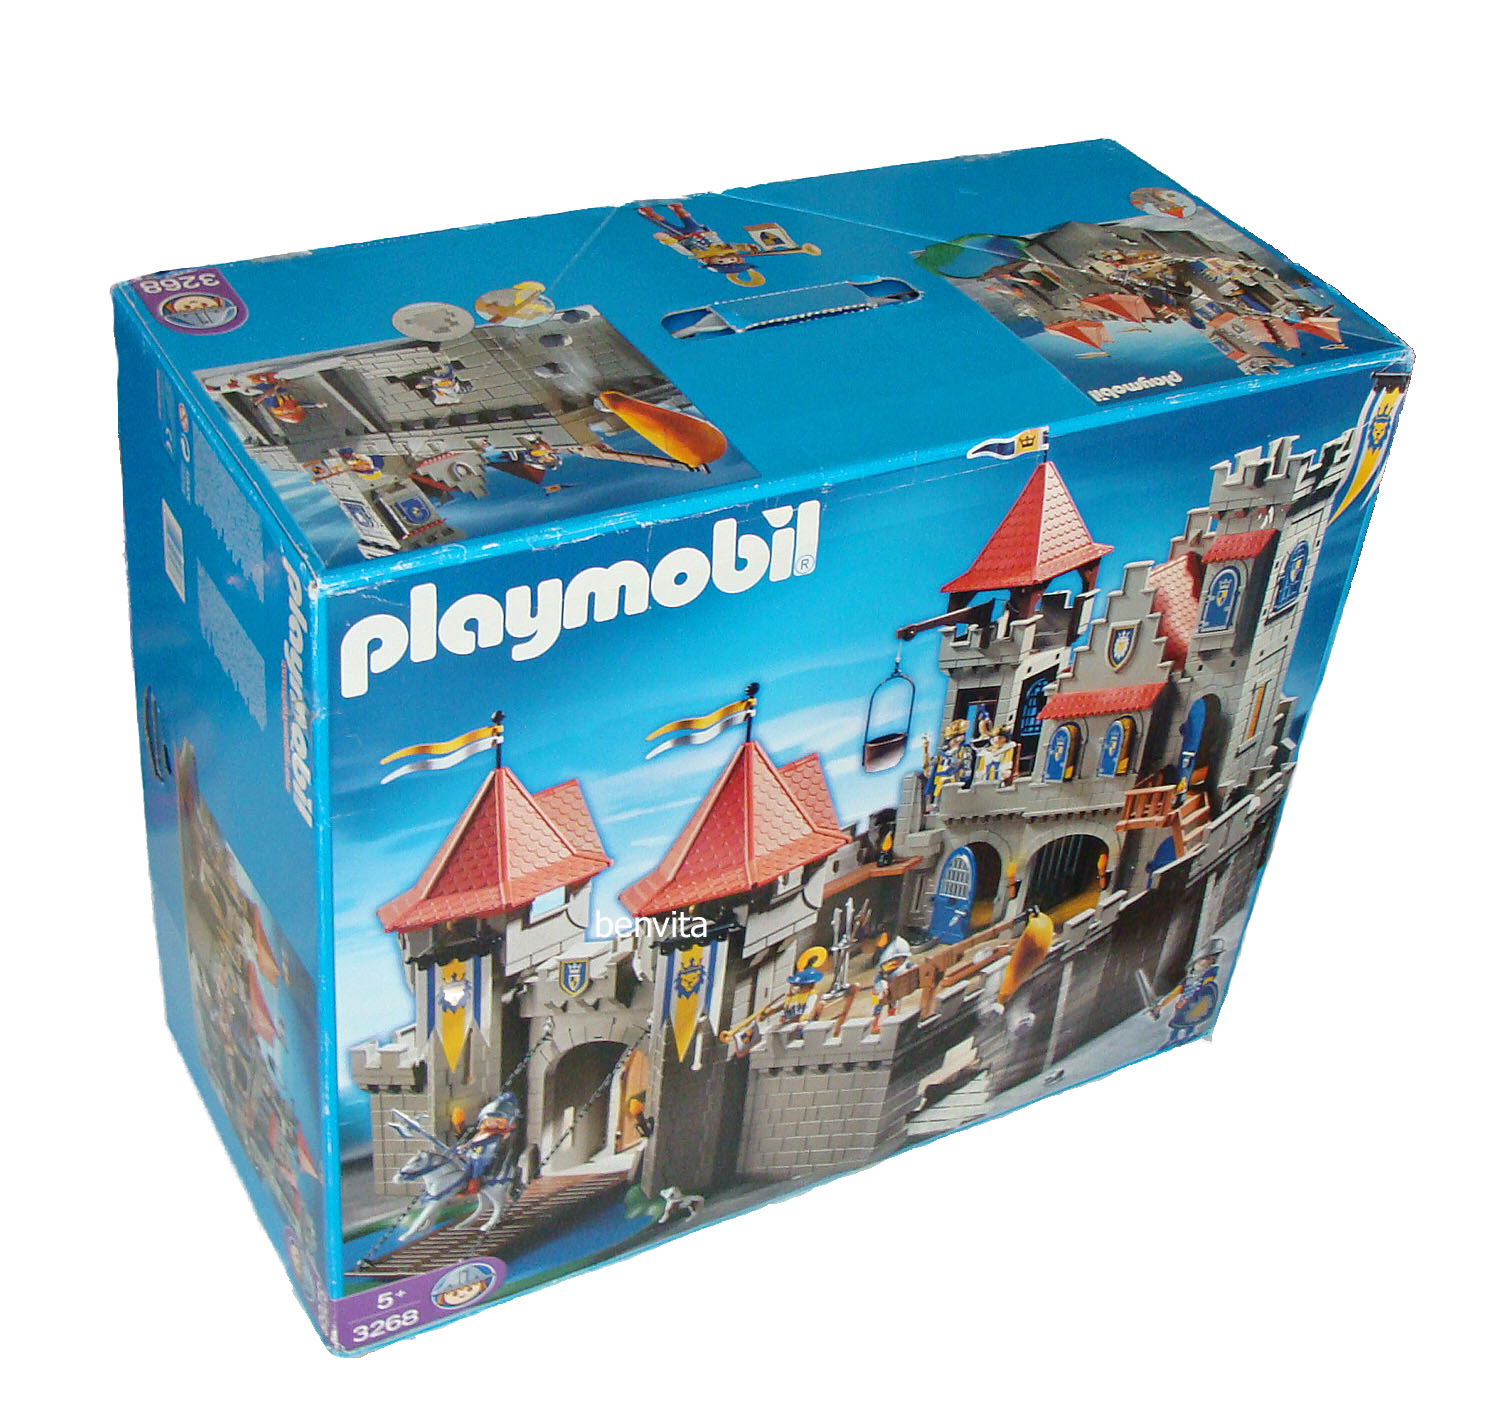 playmobil 3268 gro e k nigsritterburg 5 neu ebay. Black Bedroom Furniture Sets. Home Design Ideas